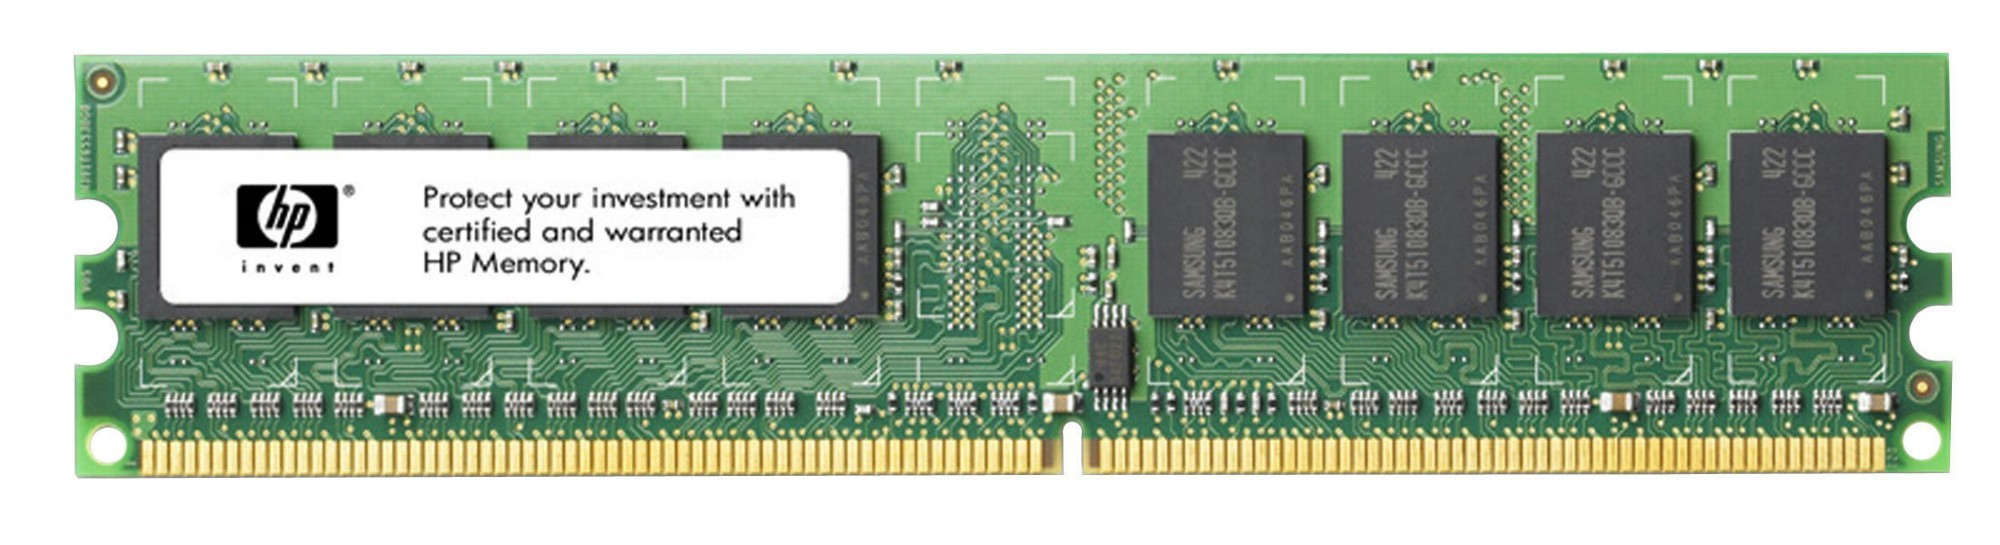 HPE 501536-001 8GB DDR3-1333MHZ DDR3 1333MHZ MEMORY MODULE